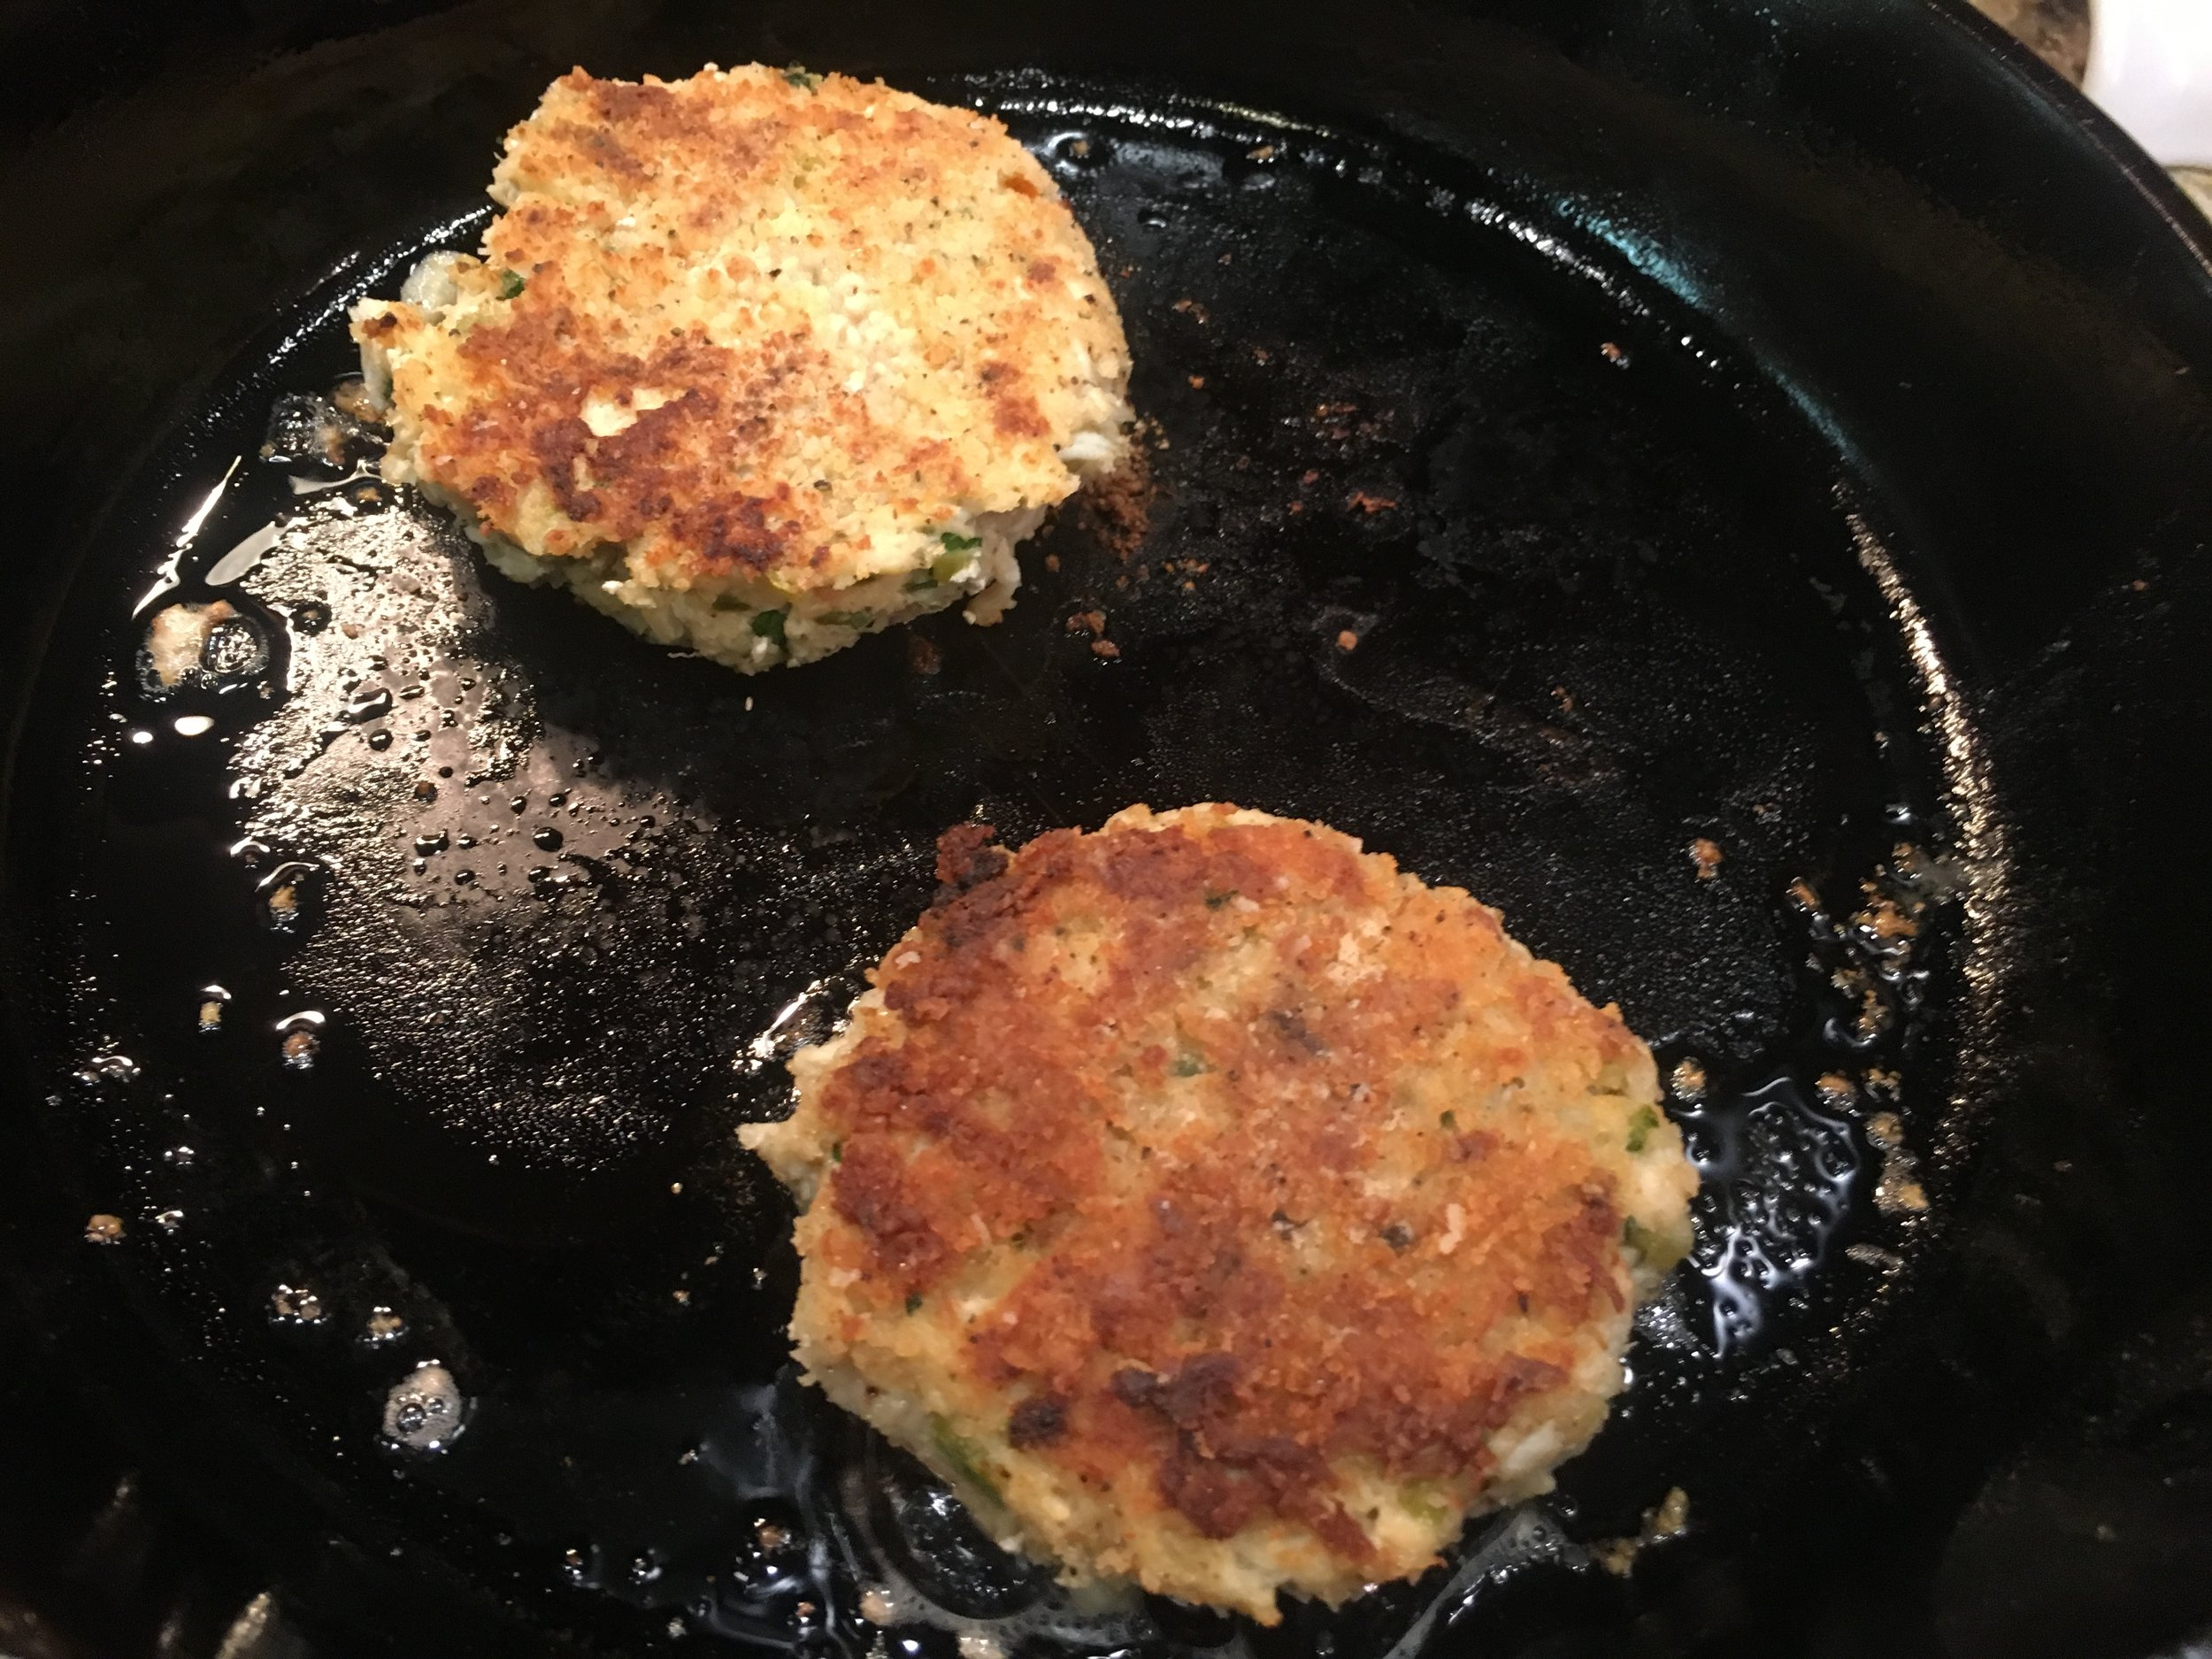 These, like almost everything else, turn out great in a cast iron pan.